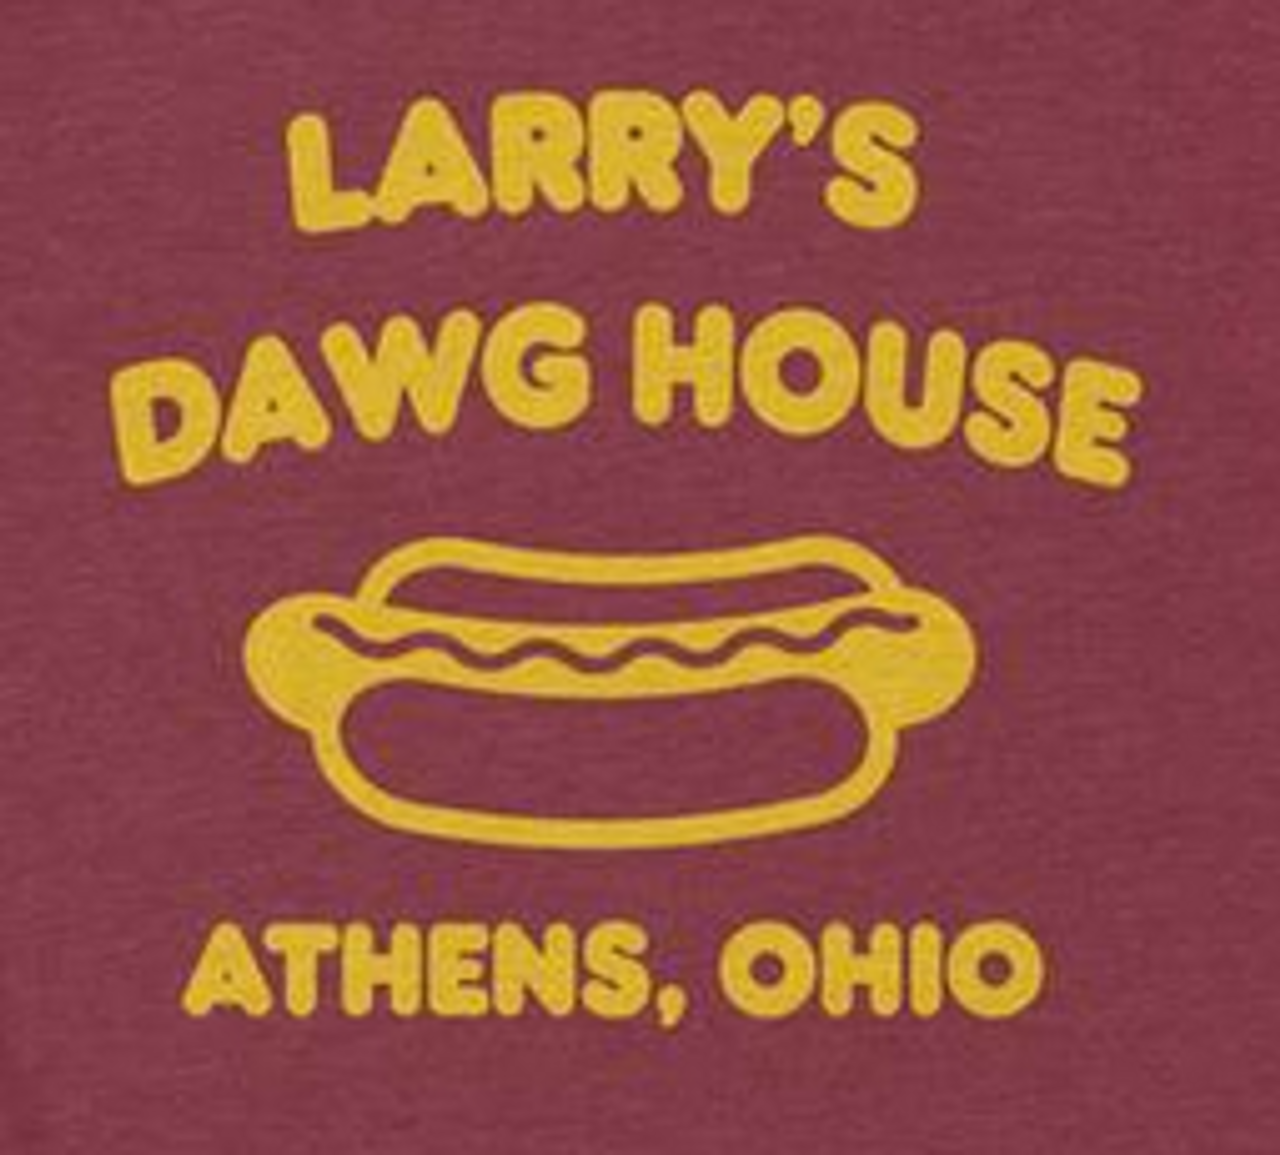 Larry's Dawg House